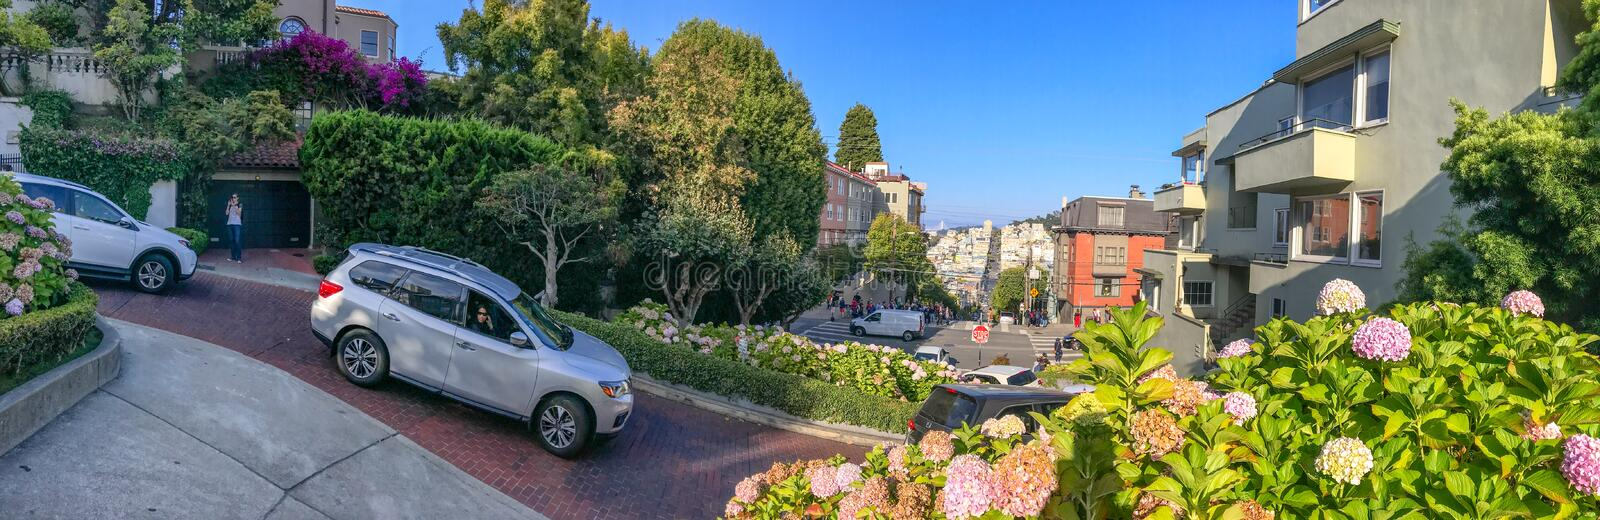 SAN FRANCISCO - AUGUST 7, 2017: Tourists and cars on Russian Hill. The city attracts 25 million people annually.  stock photography